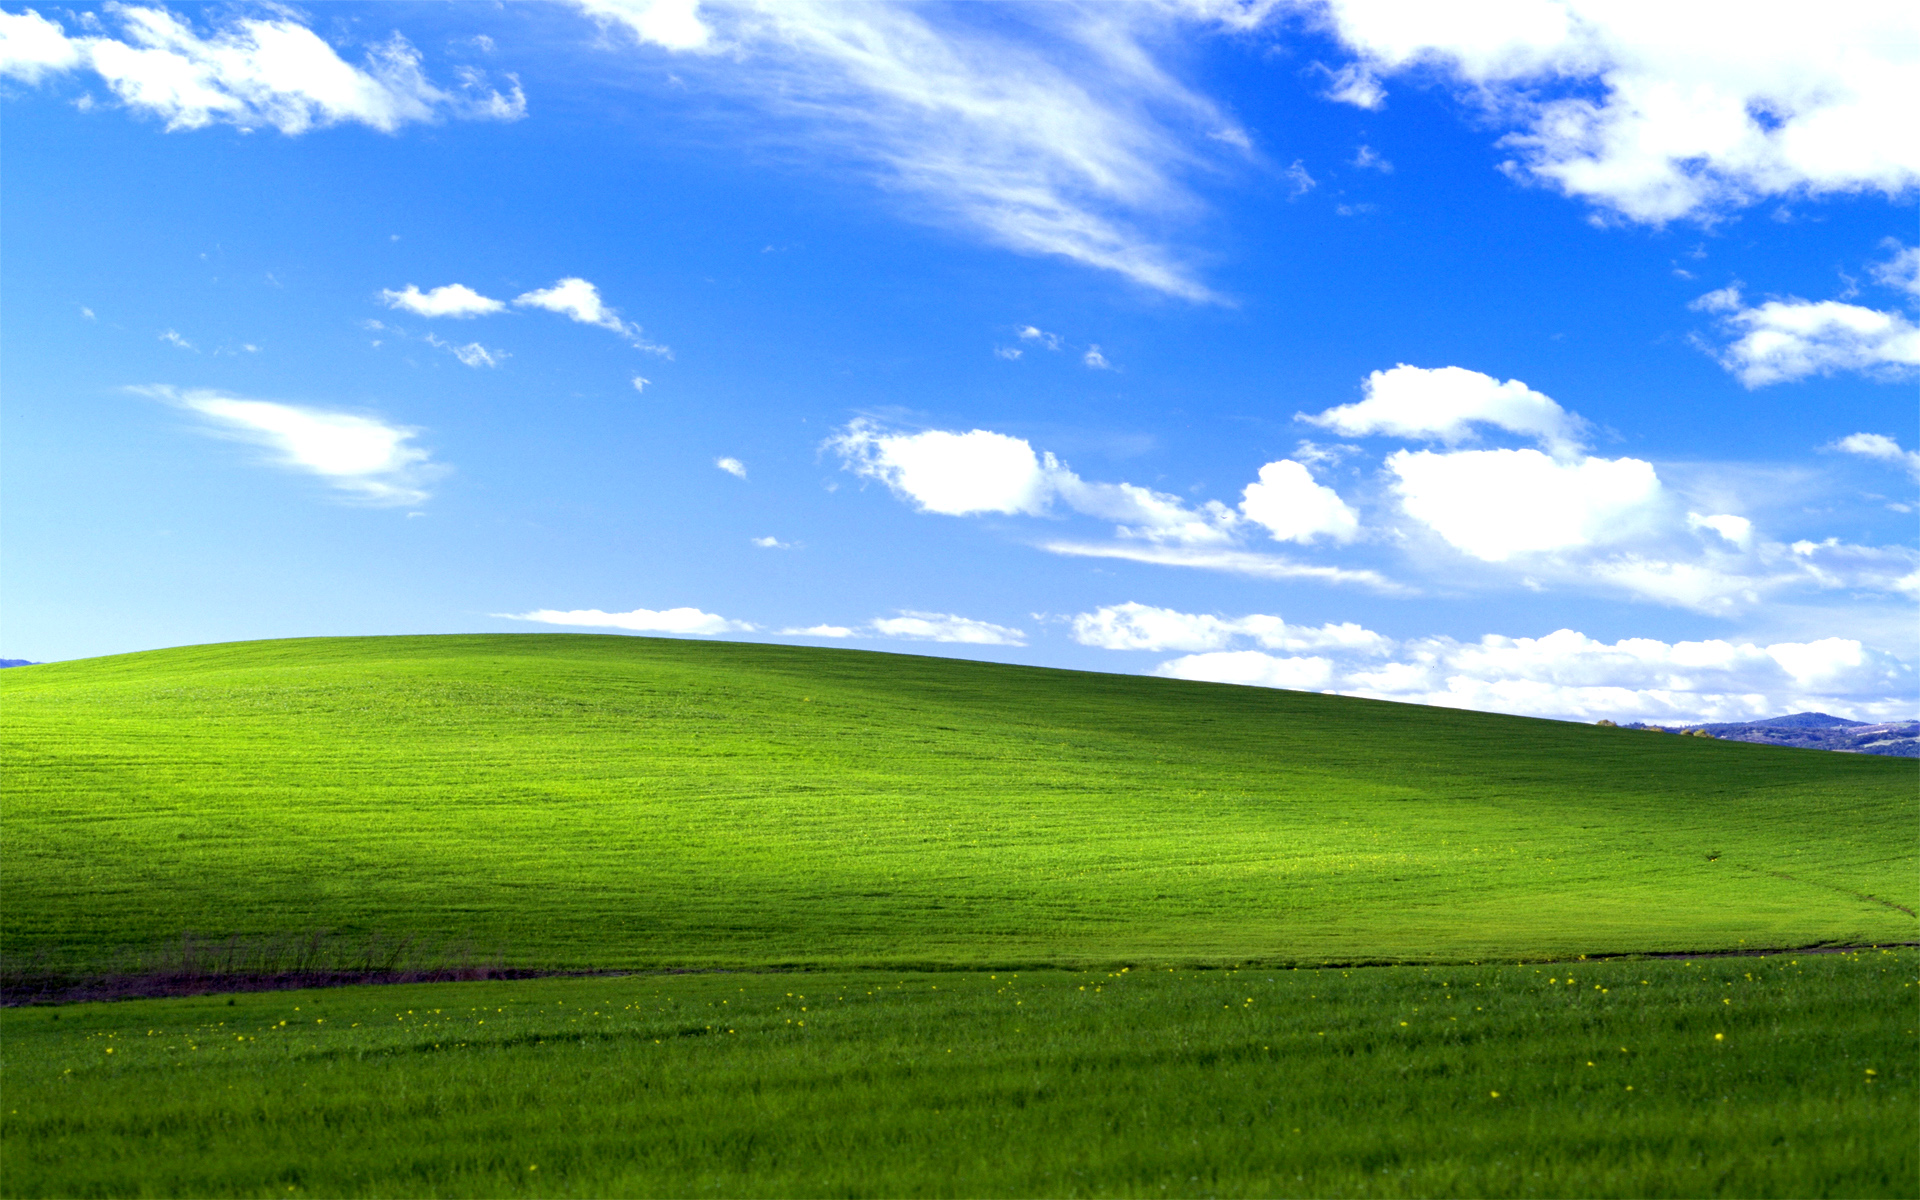 Windows Xp Wallpaper Full Hd 13258 Wallpaper Walldiskpaper